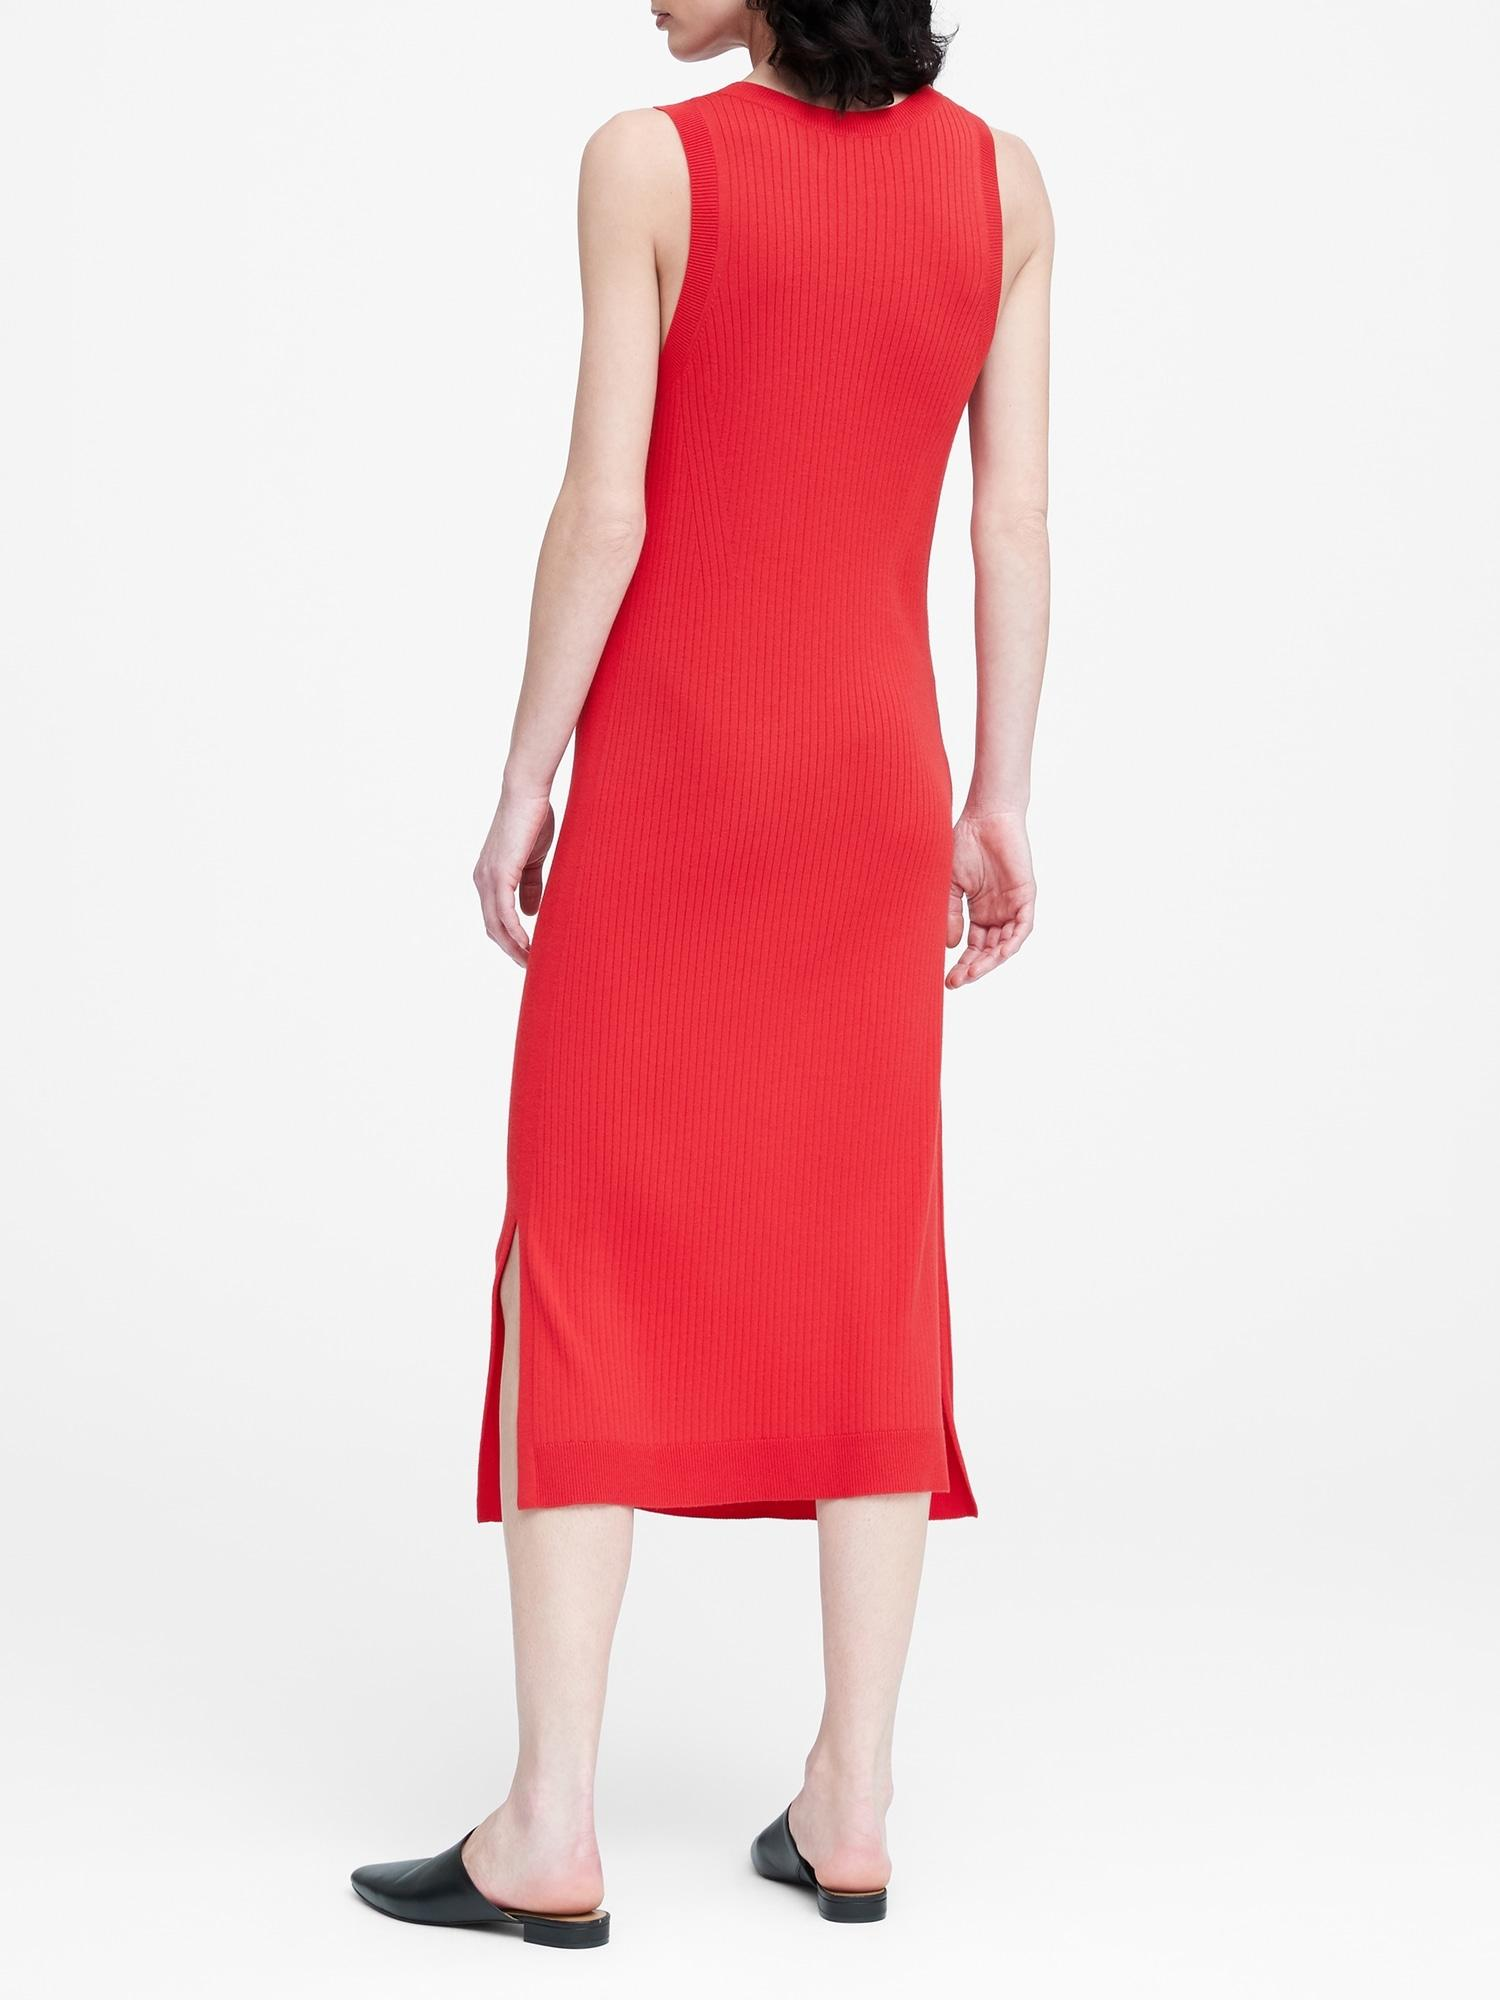 2233318e35 Banana Republic Knit Dress in Red - Lyst